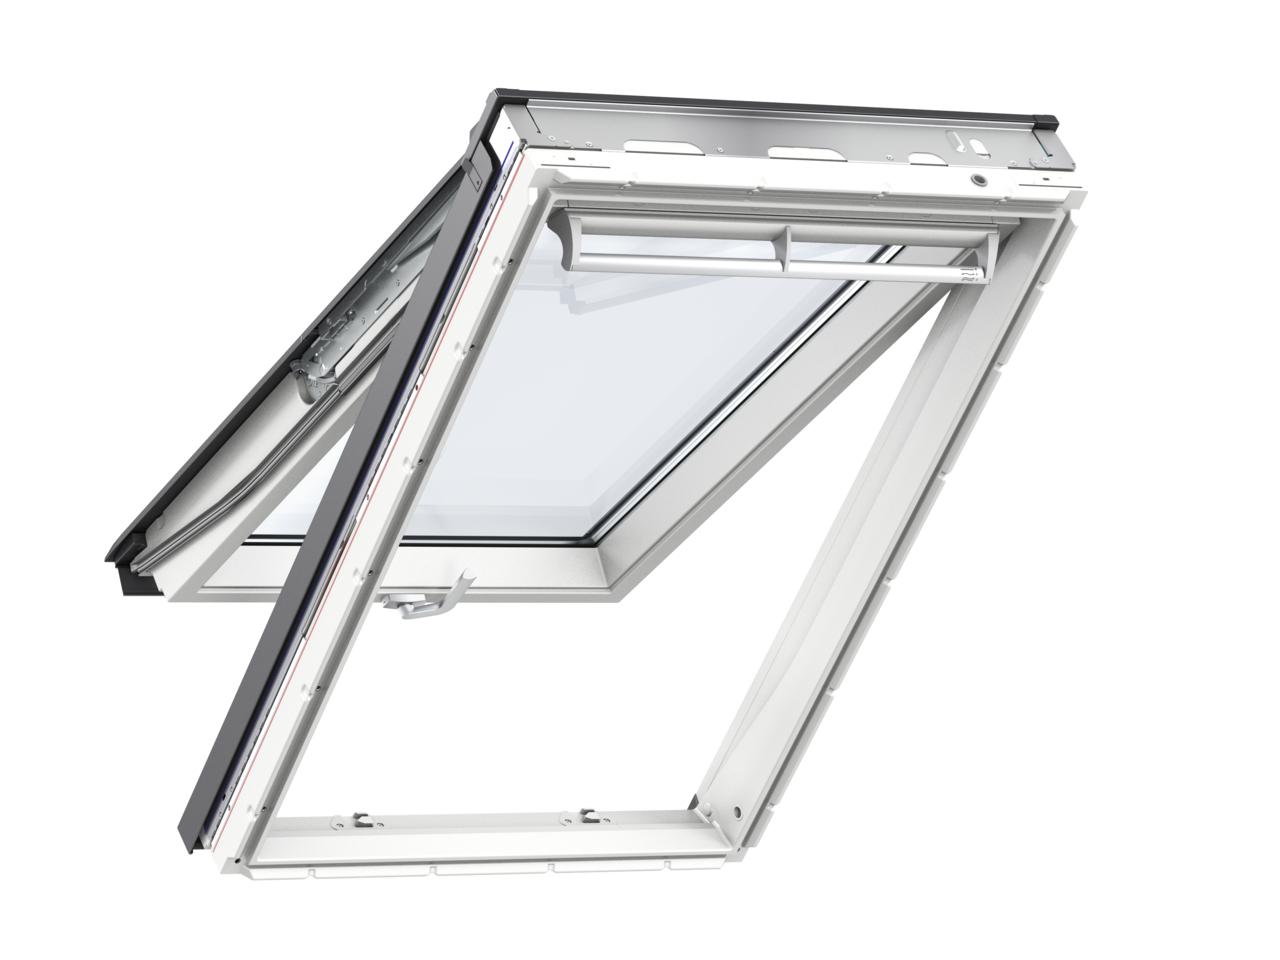 Velux GPU MK06 780 x 1180mm Top Hung Standard 70Pane Roof Window - White Polyurethane